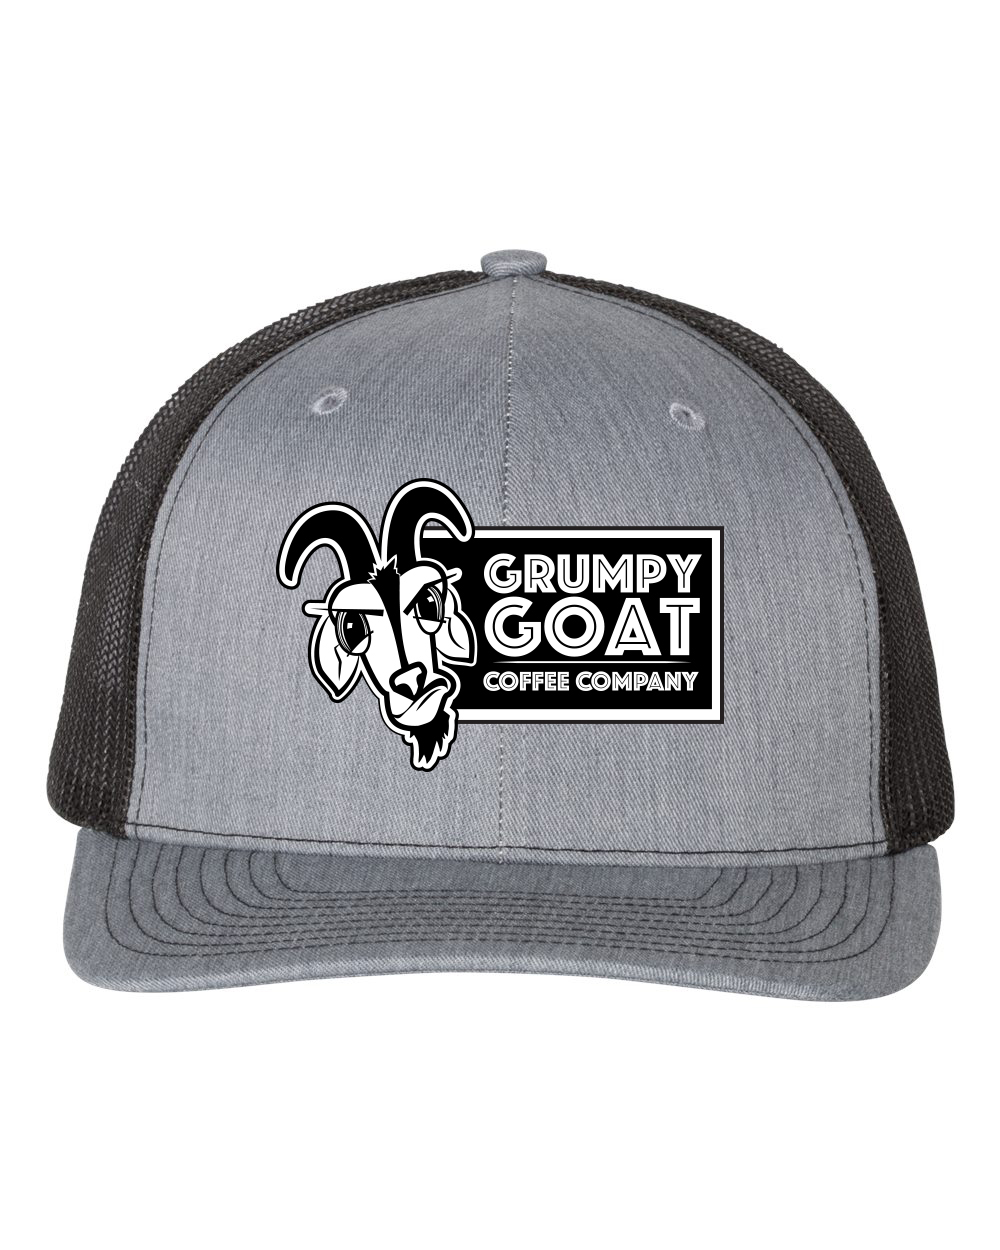 Grumpy Goat Gray Trucker Hat with Black Mesh